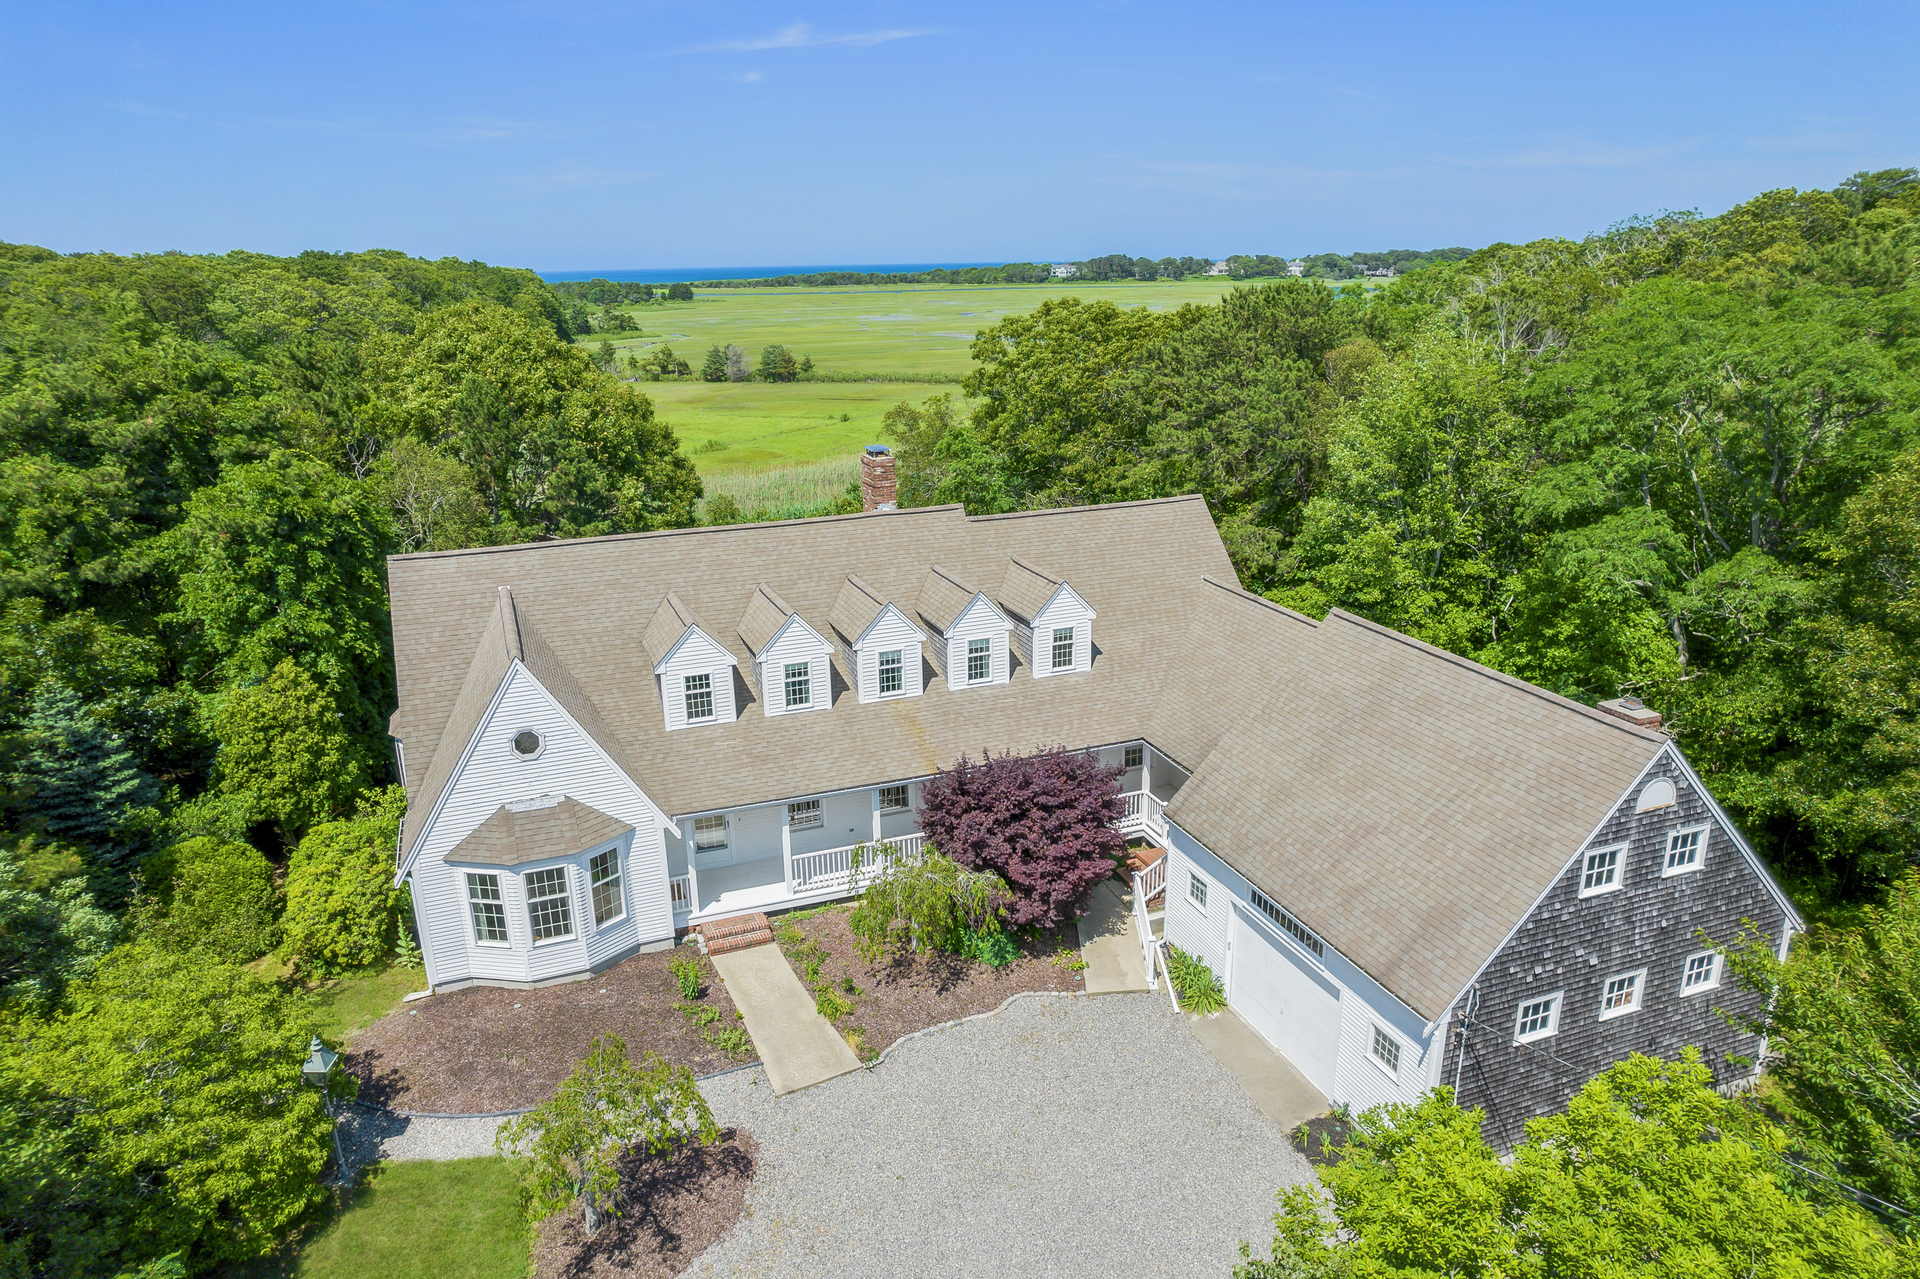 483 Route 6A, East Sandwich, MA 02537 | Listed By Griffin Realty Group l MLS  22103768